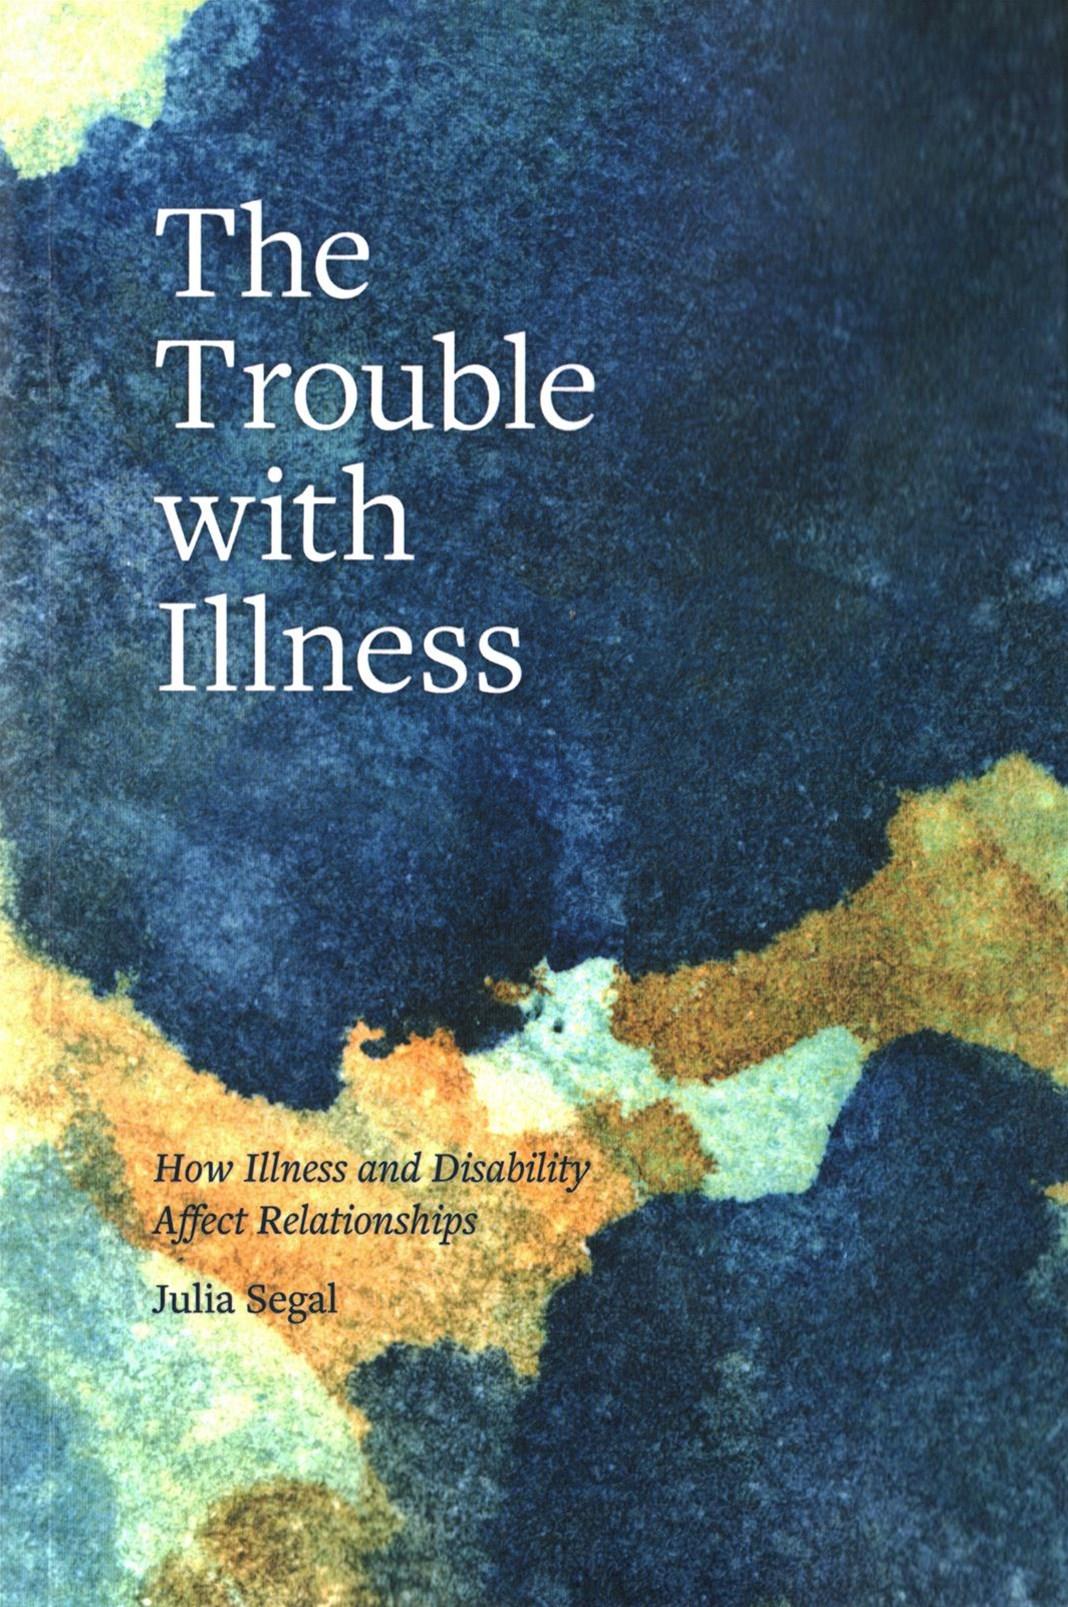 Trouble with Illness: The Effects of Illness and Increasing Disability on Relationships